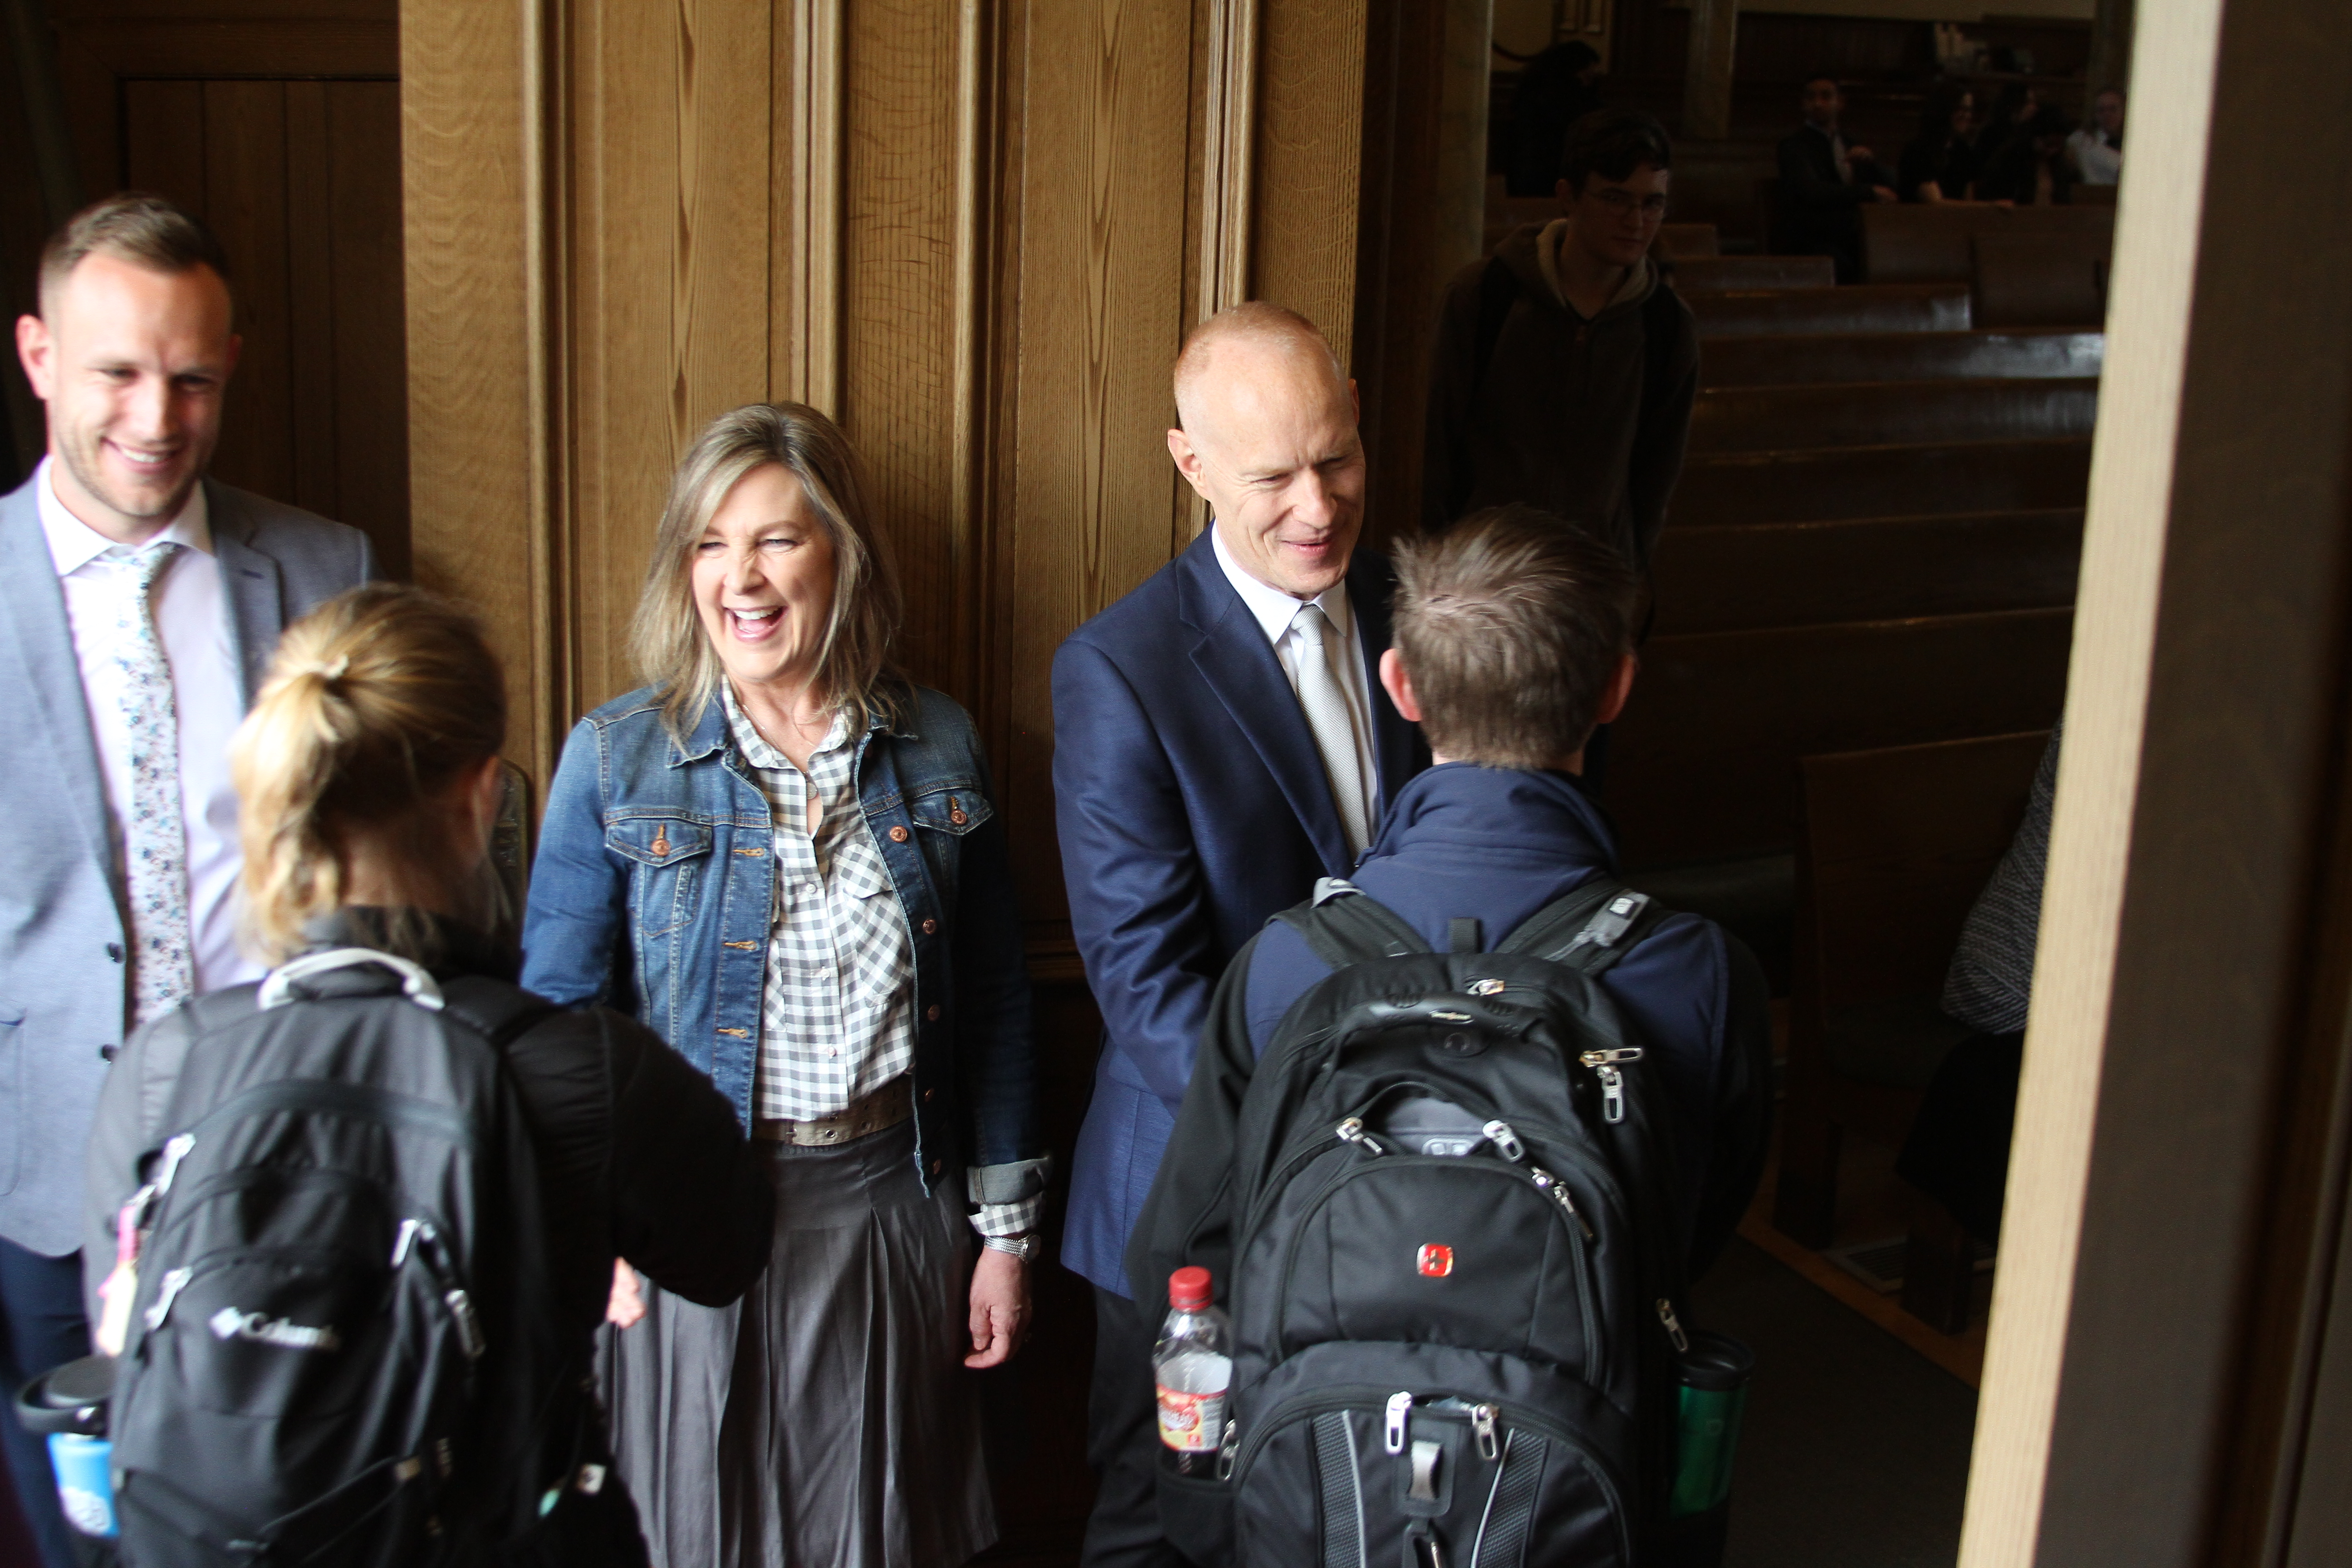 Michelle and Jon Schmidt greet LDS Business College students as they enter the Assembly Hall on Temple Square on March 26, 2019.